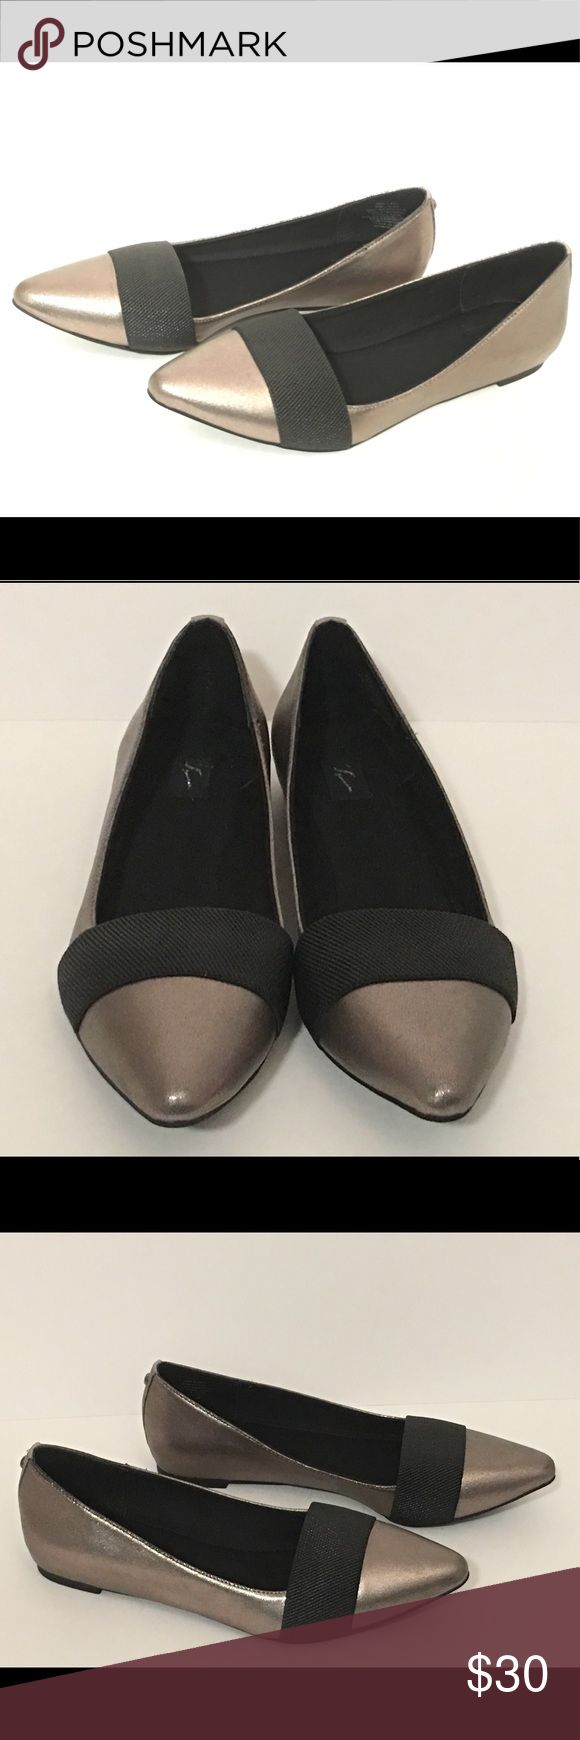 Simply Vera Wang Women's Pointed Toe Flats Pewter Brand New in Box Never Worn ~ Pointed Toe Slip-on Flats in Metallic Pewter.  Very chic, sleek and effortless style for day or night! Simply Vera Vera Wang Shoes Flats & Loafers